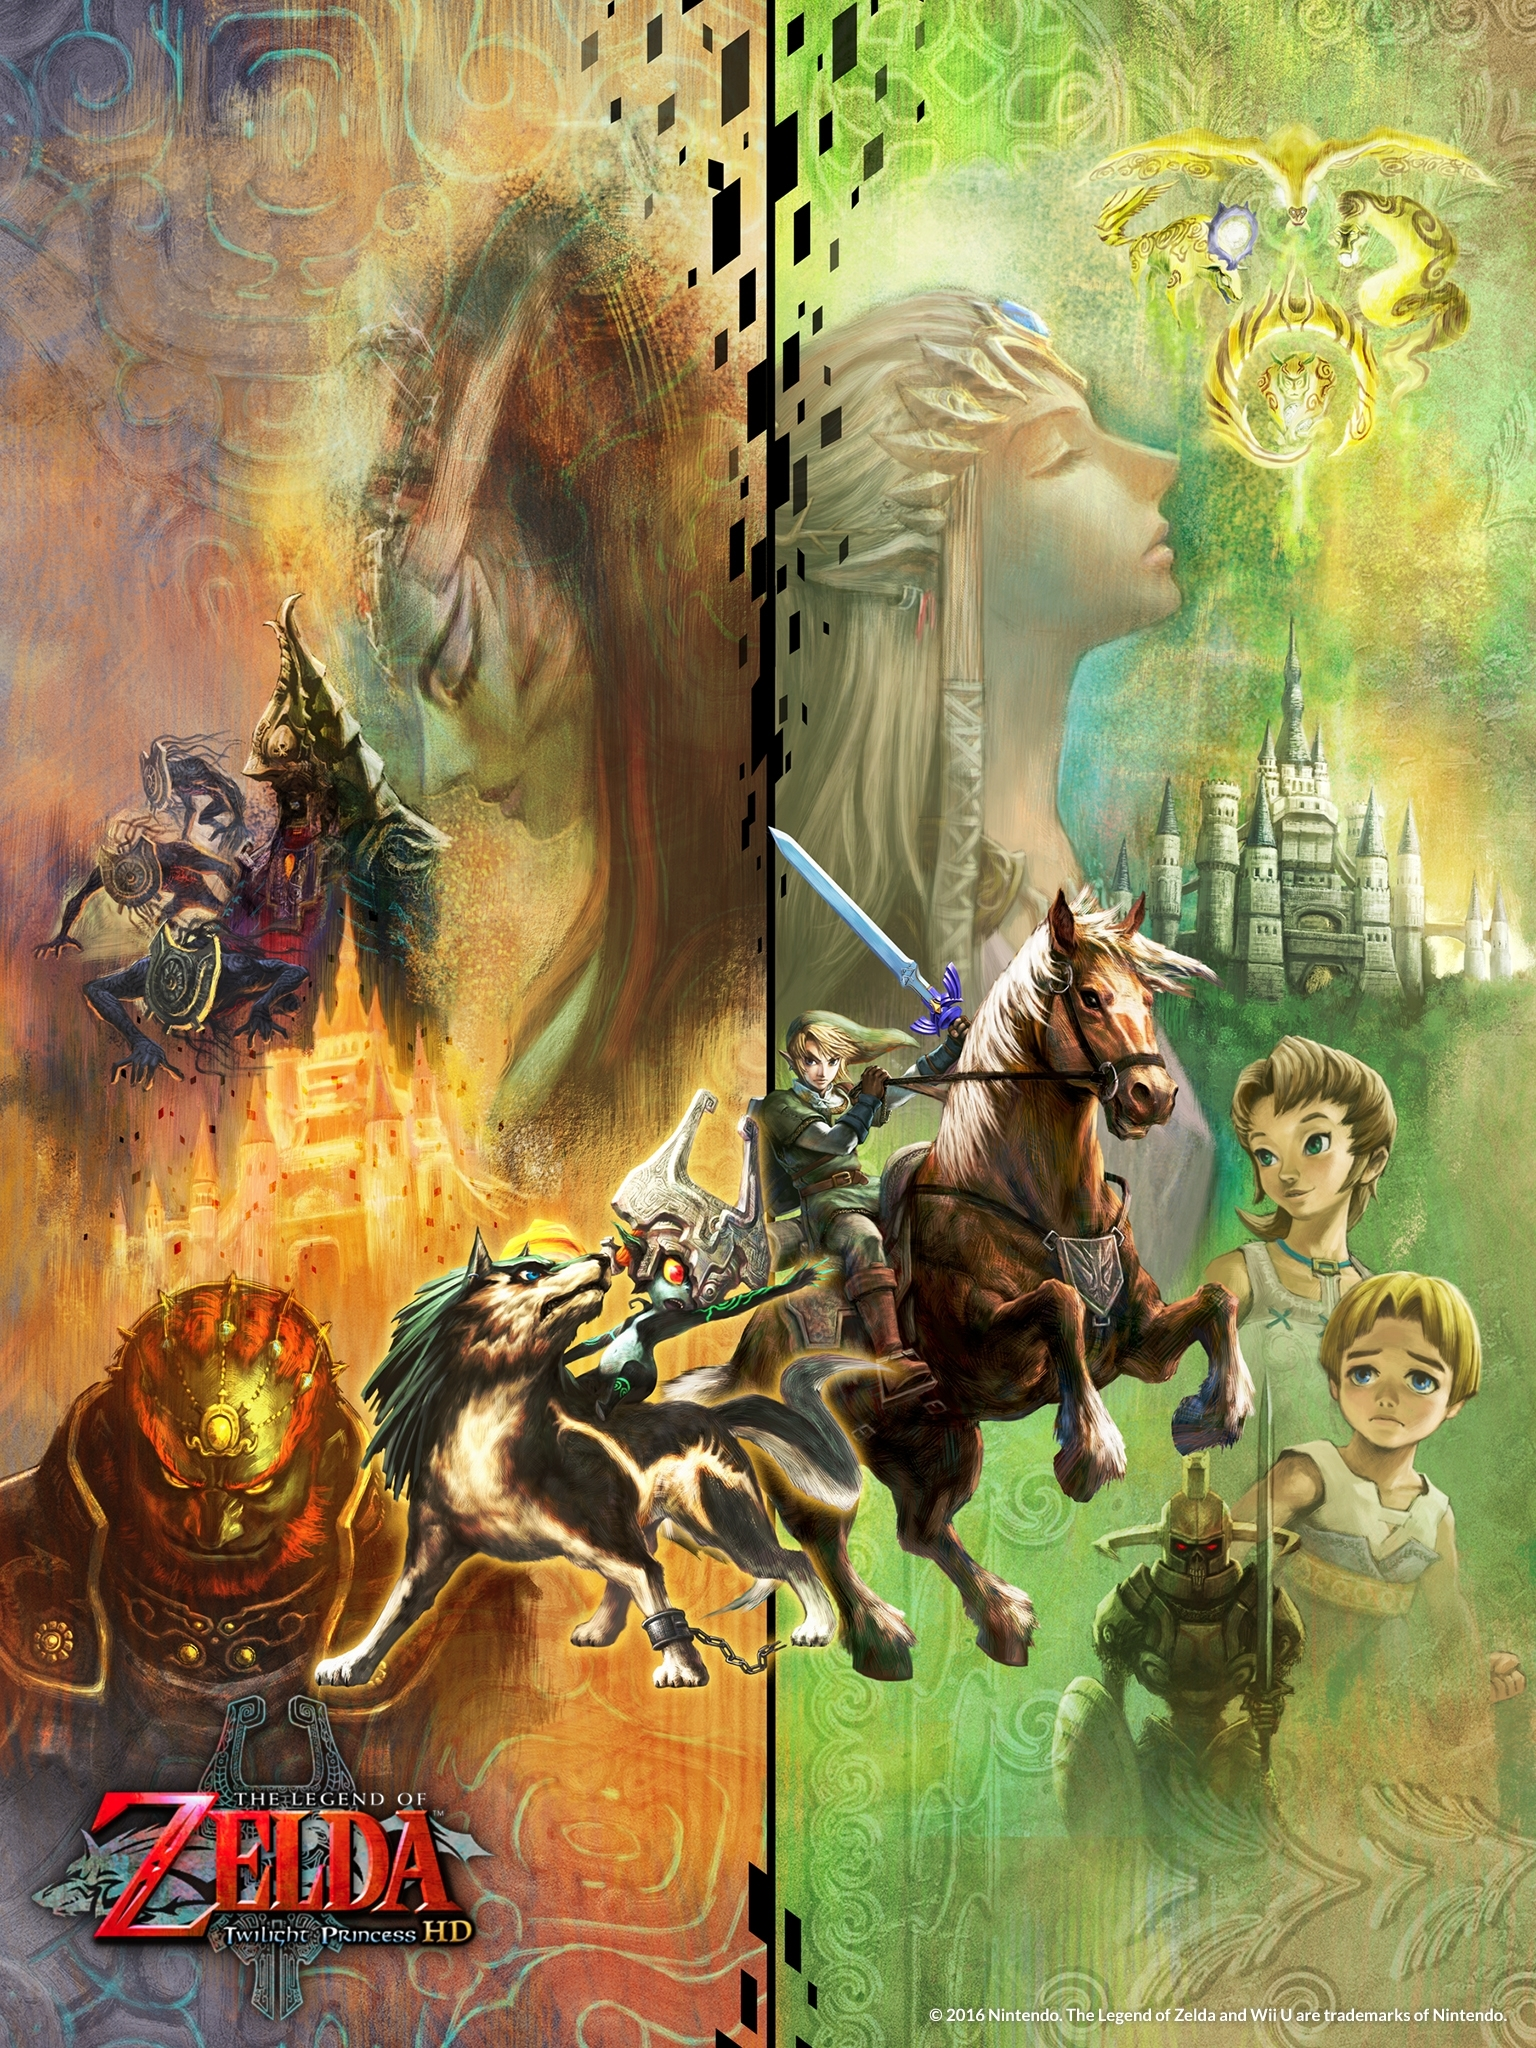 media - the legend of zelda™: twilight princess hd for wii u